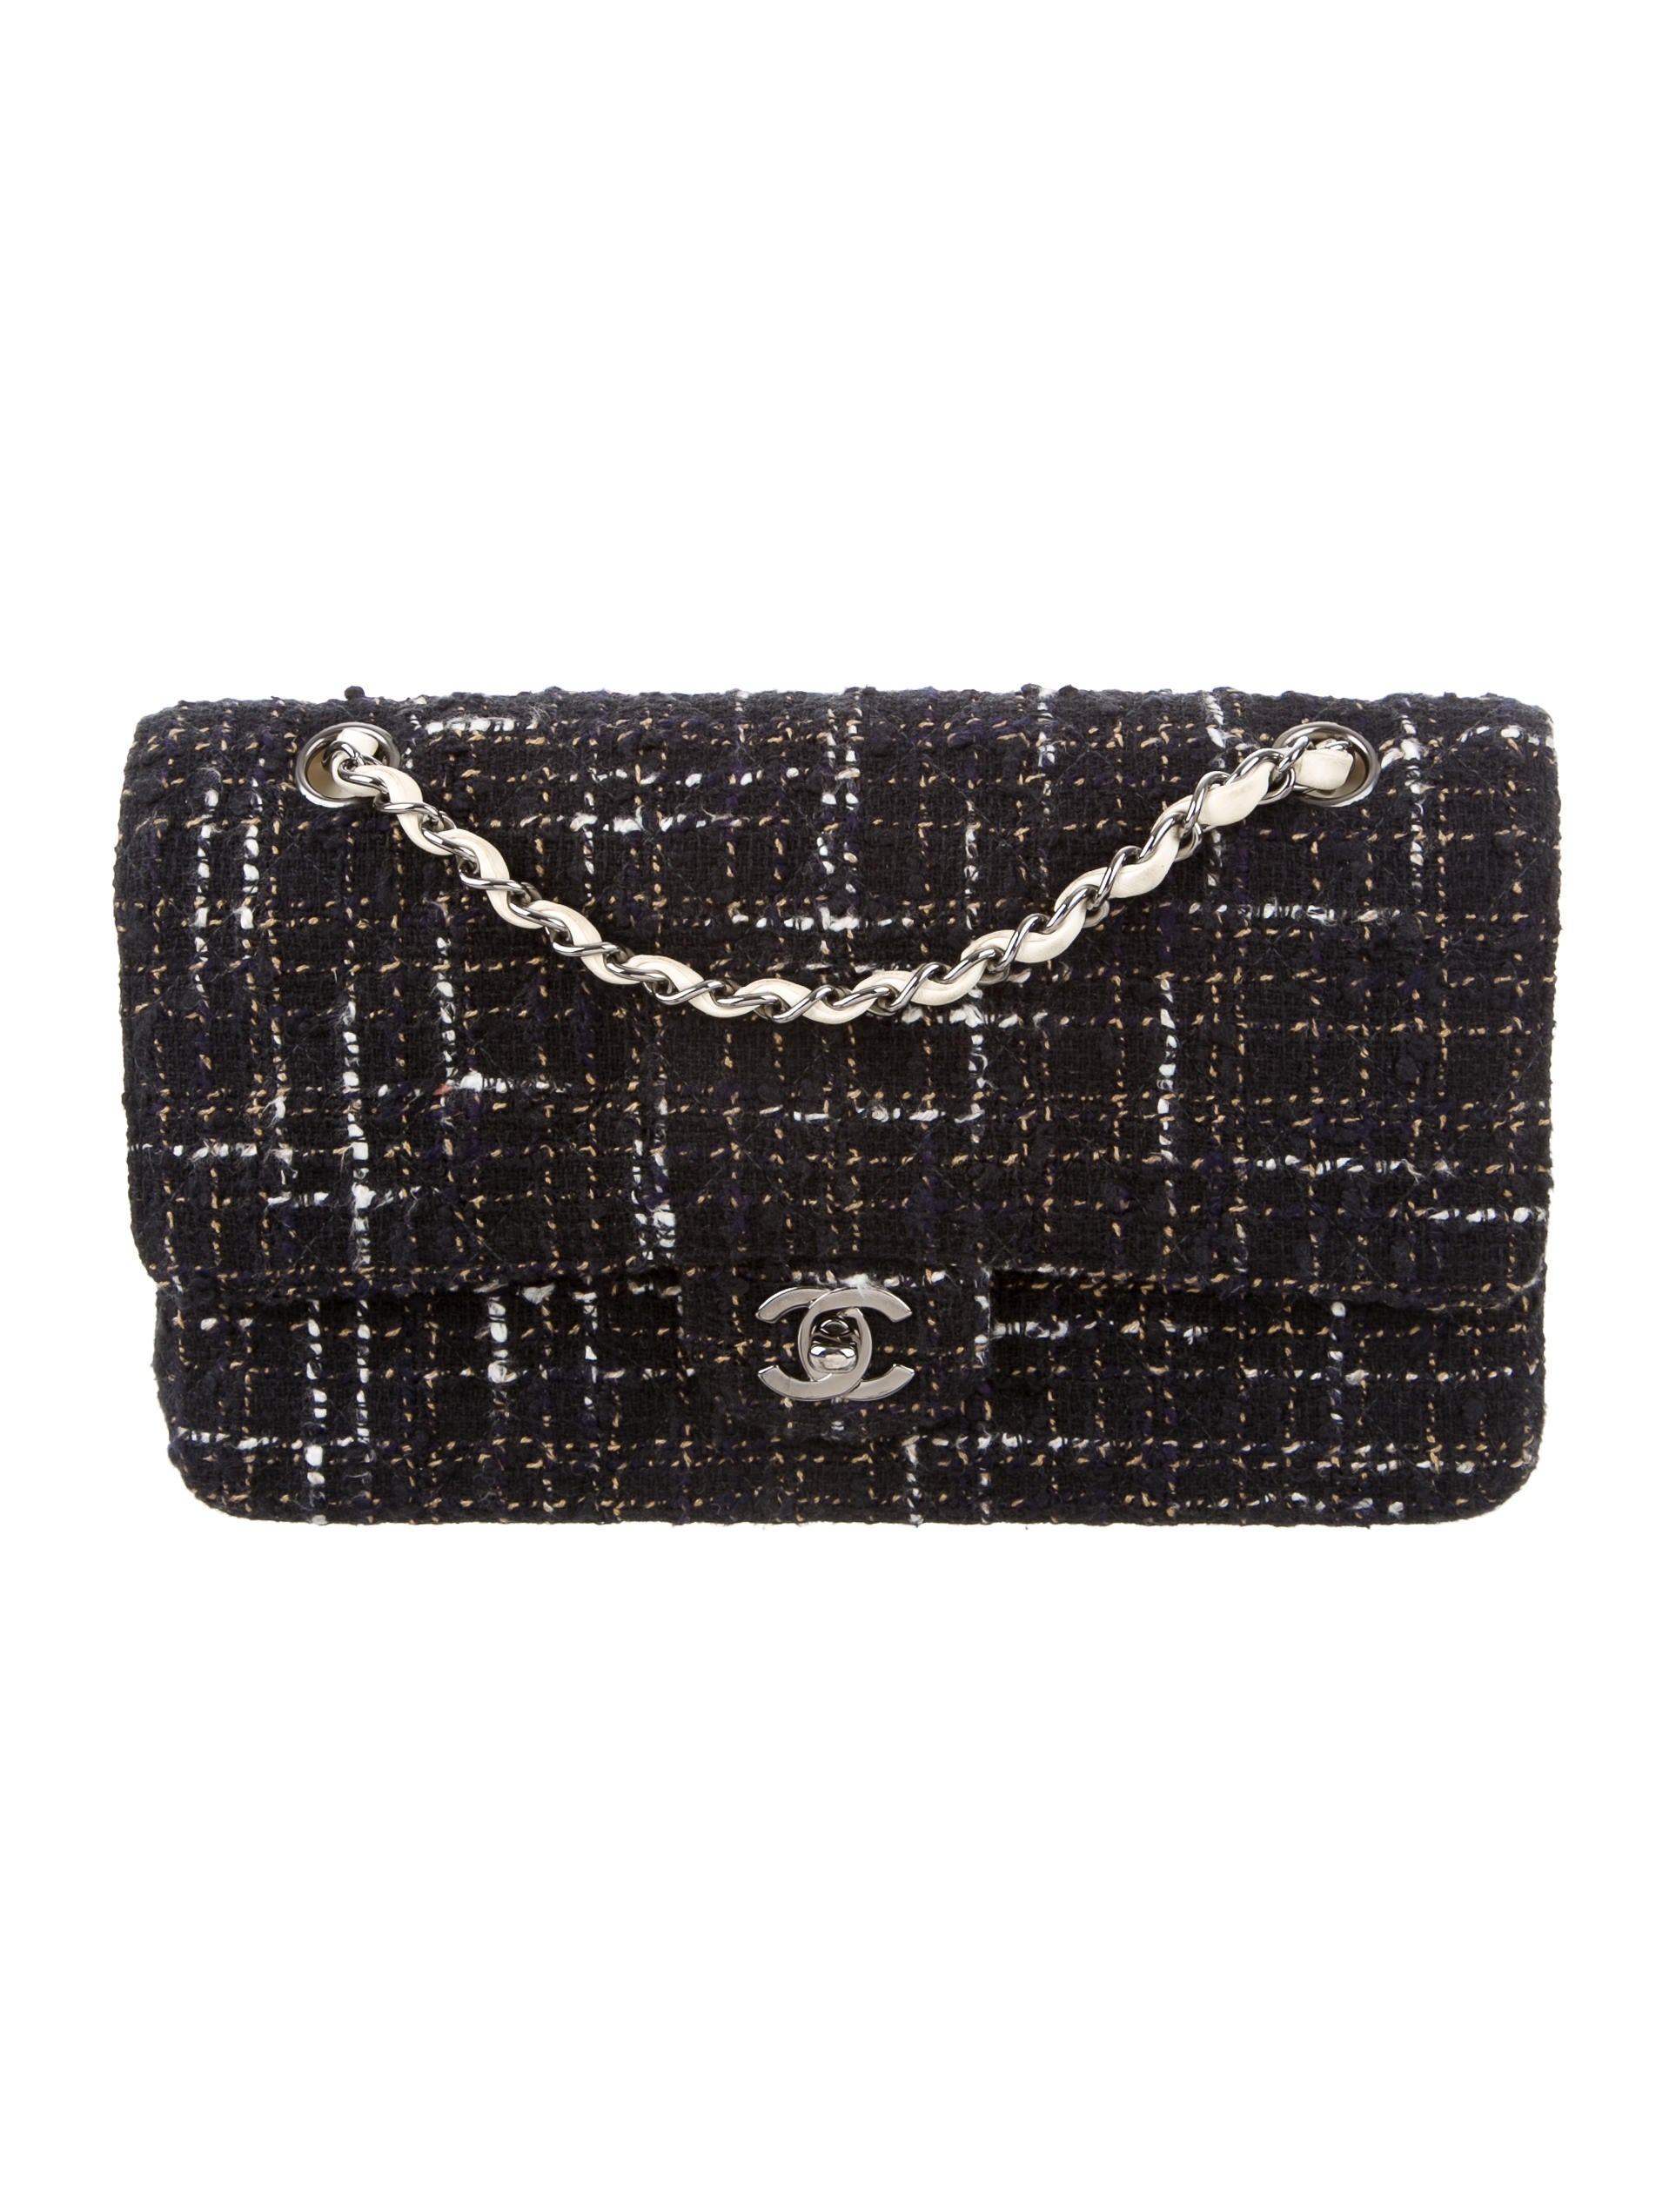 chanel tweed classic medium flap bag handbags